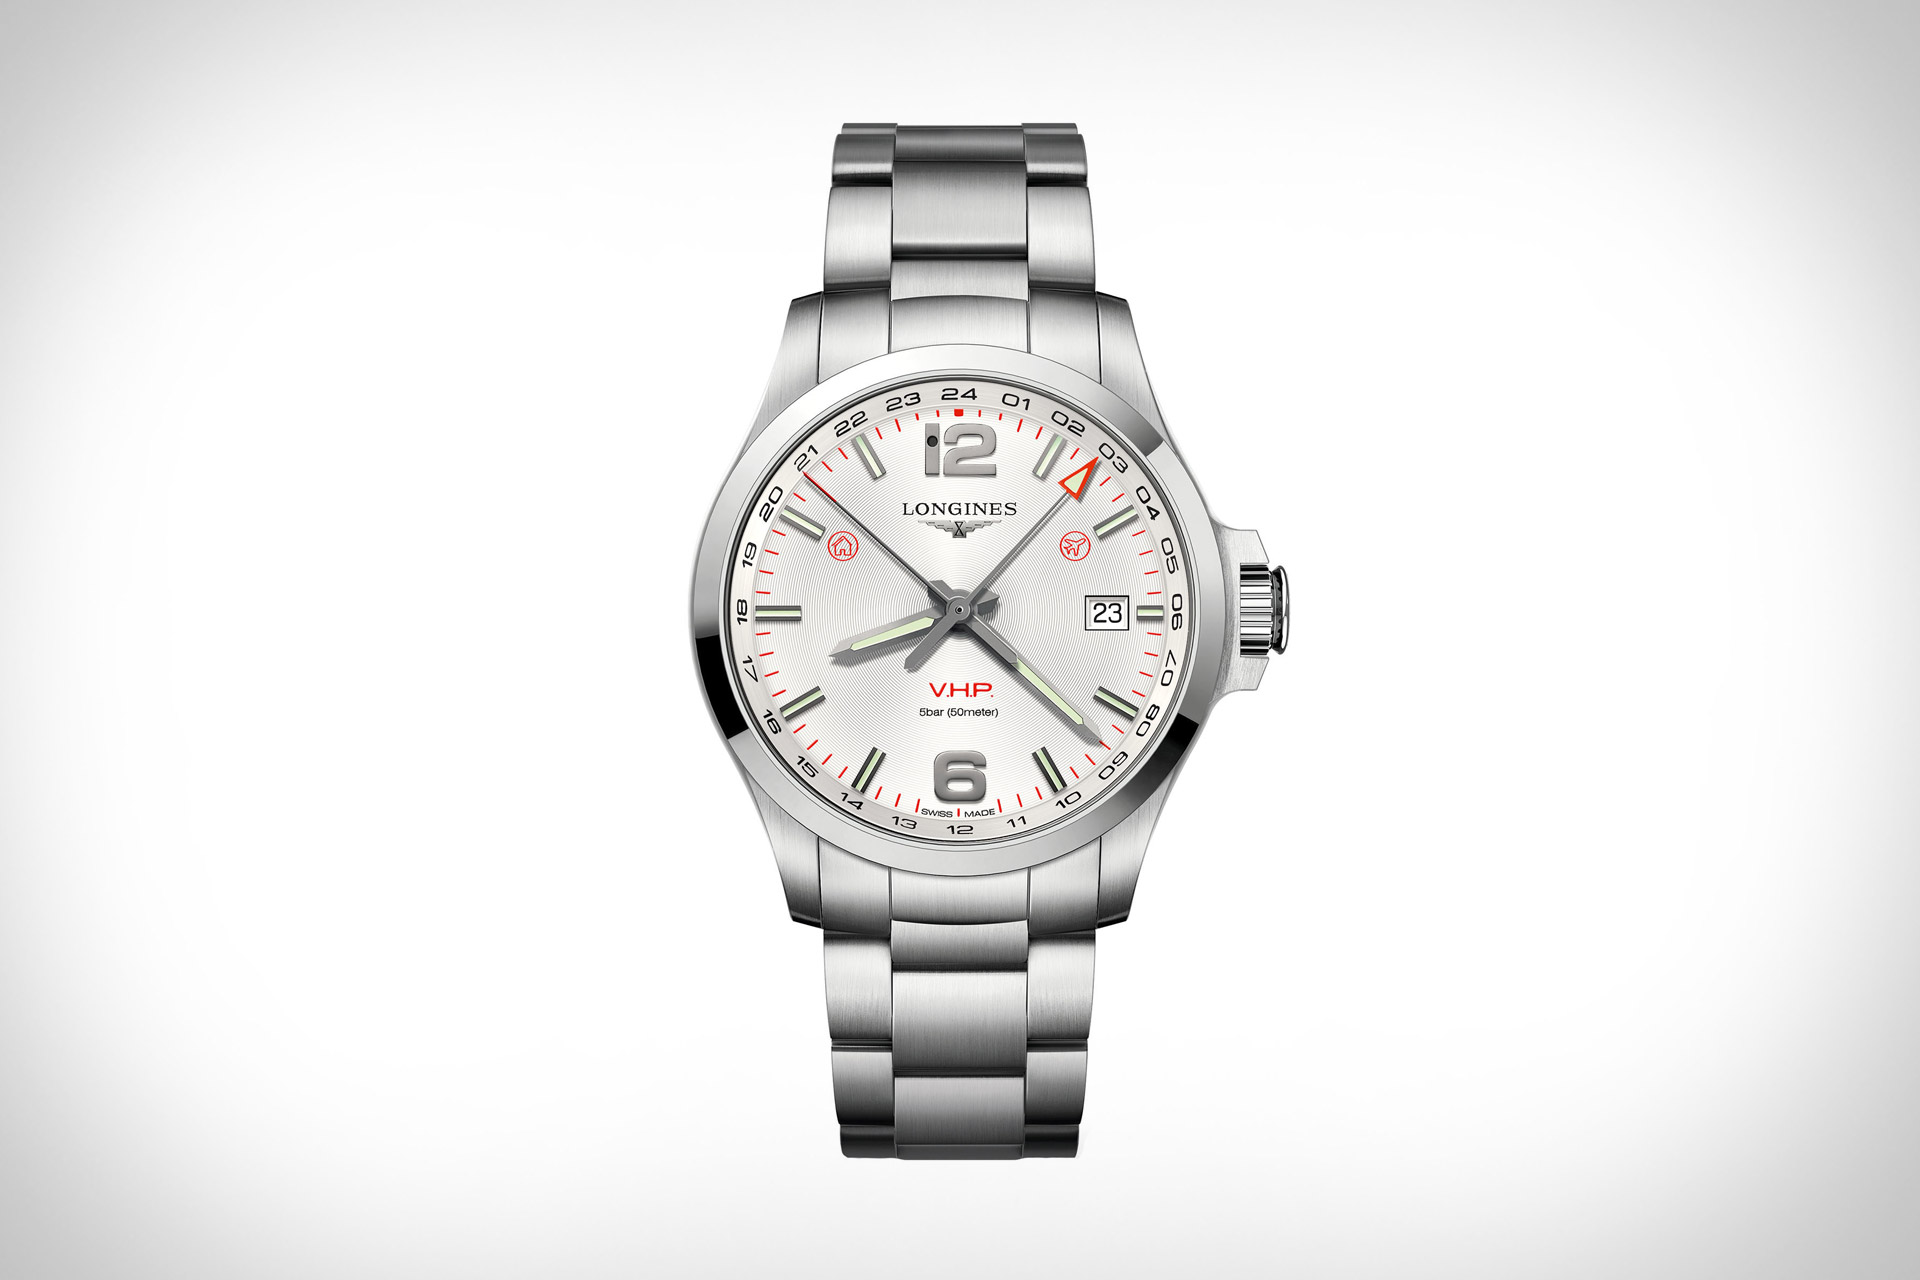 cb061a0e297 Longines Conquest VHP GMT Flash Setting Watch